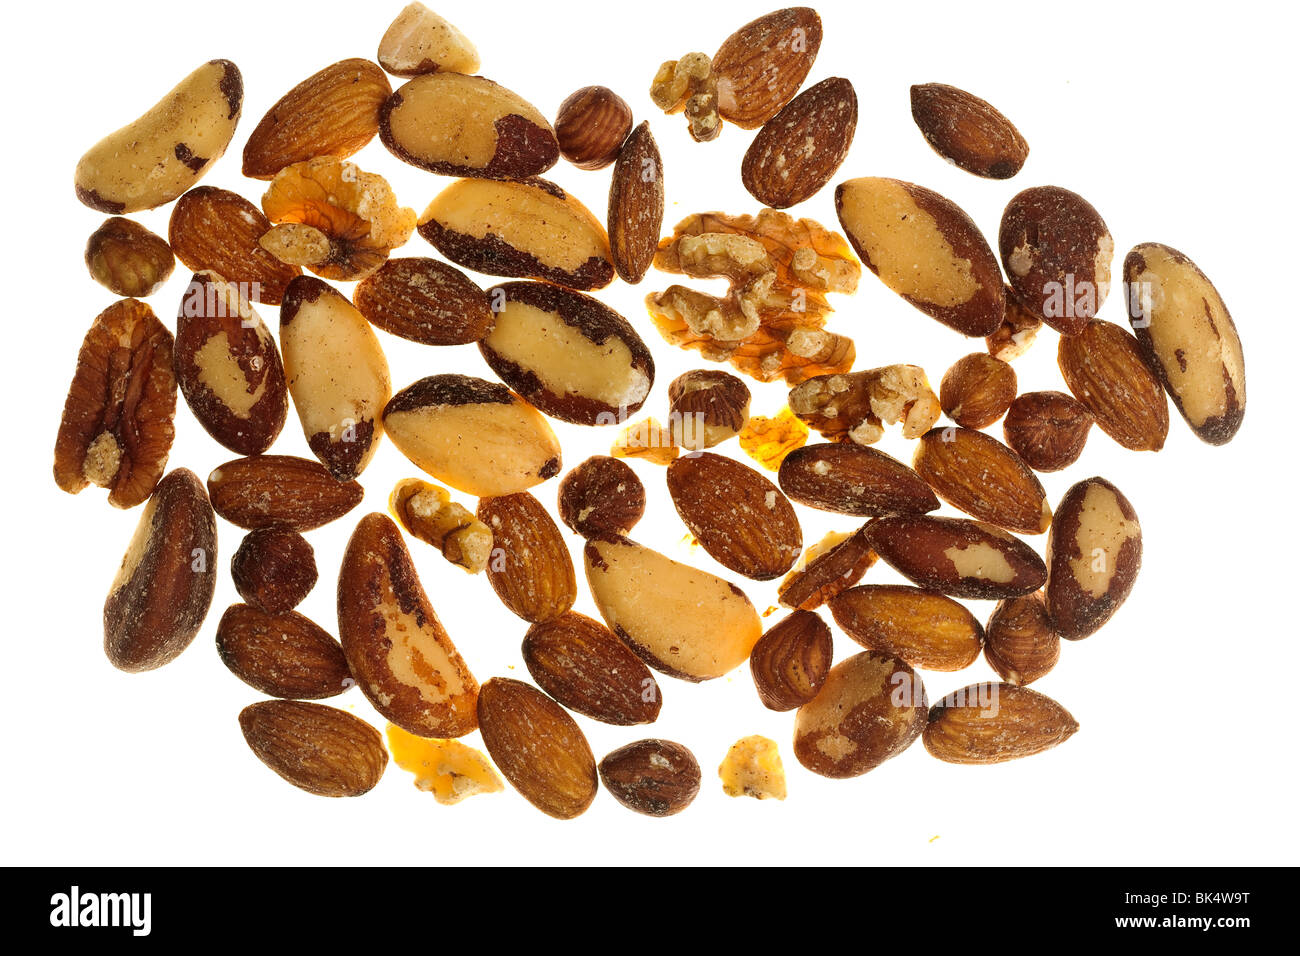 Pile of mixed nuts - Stock Image